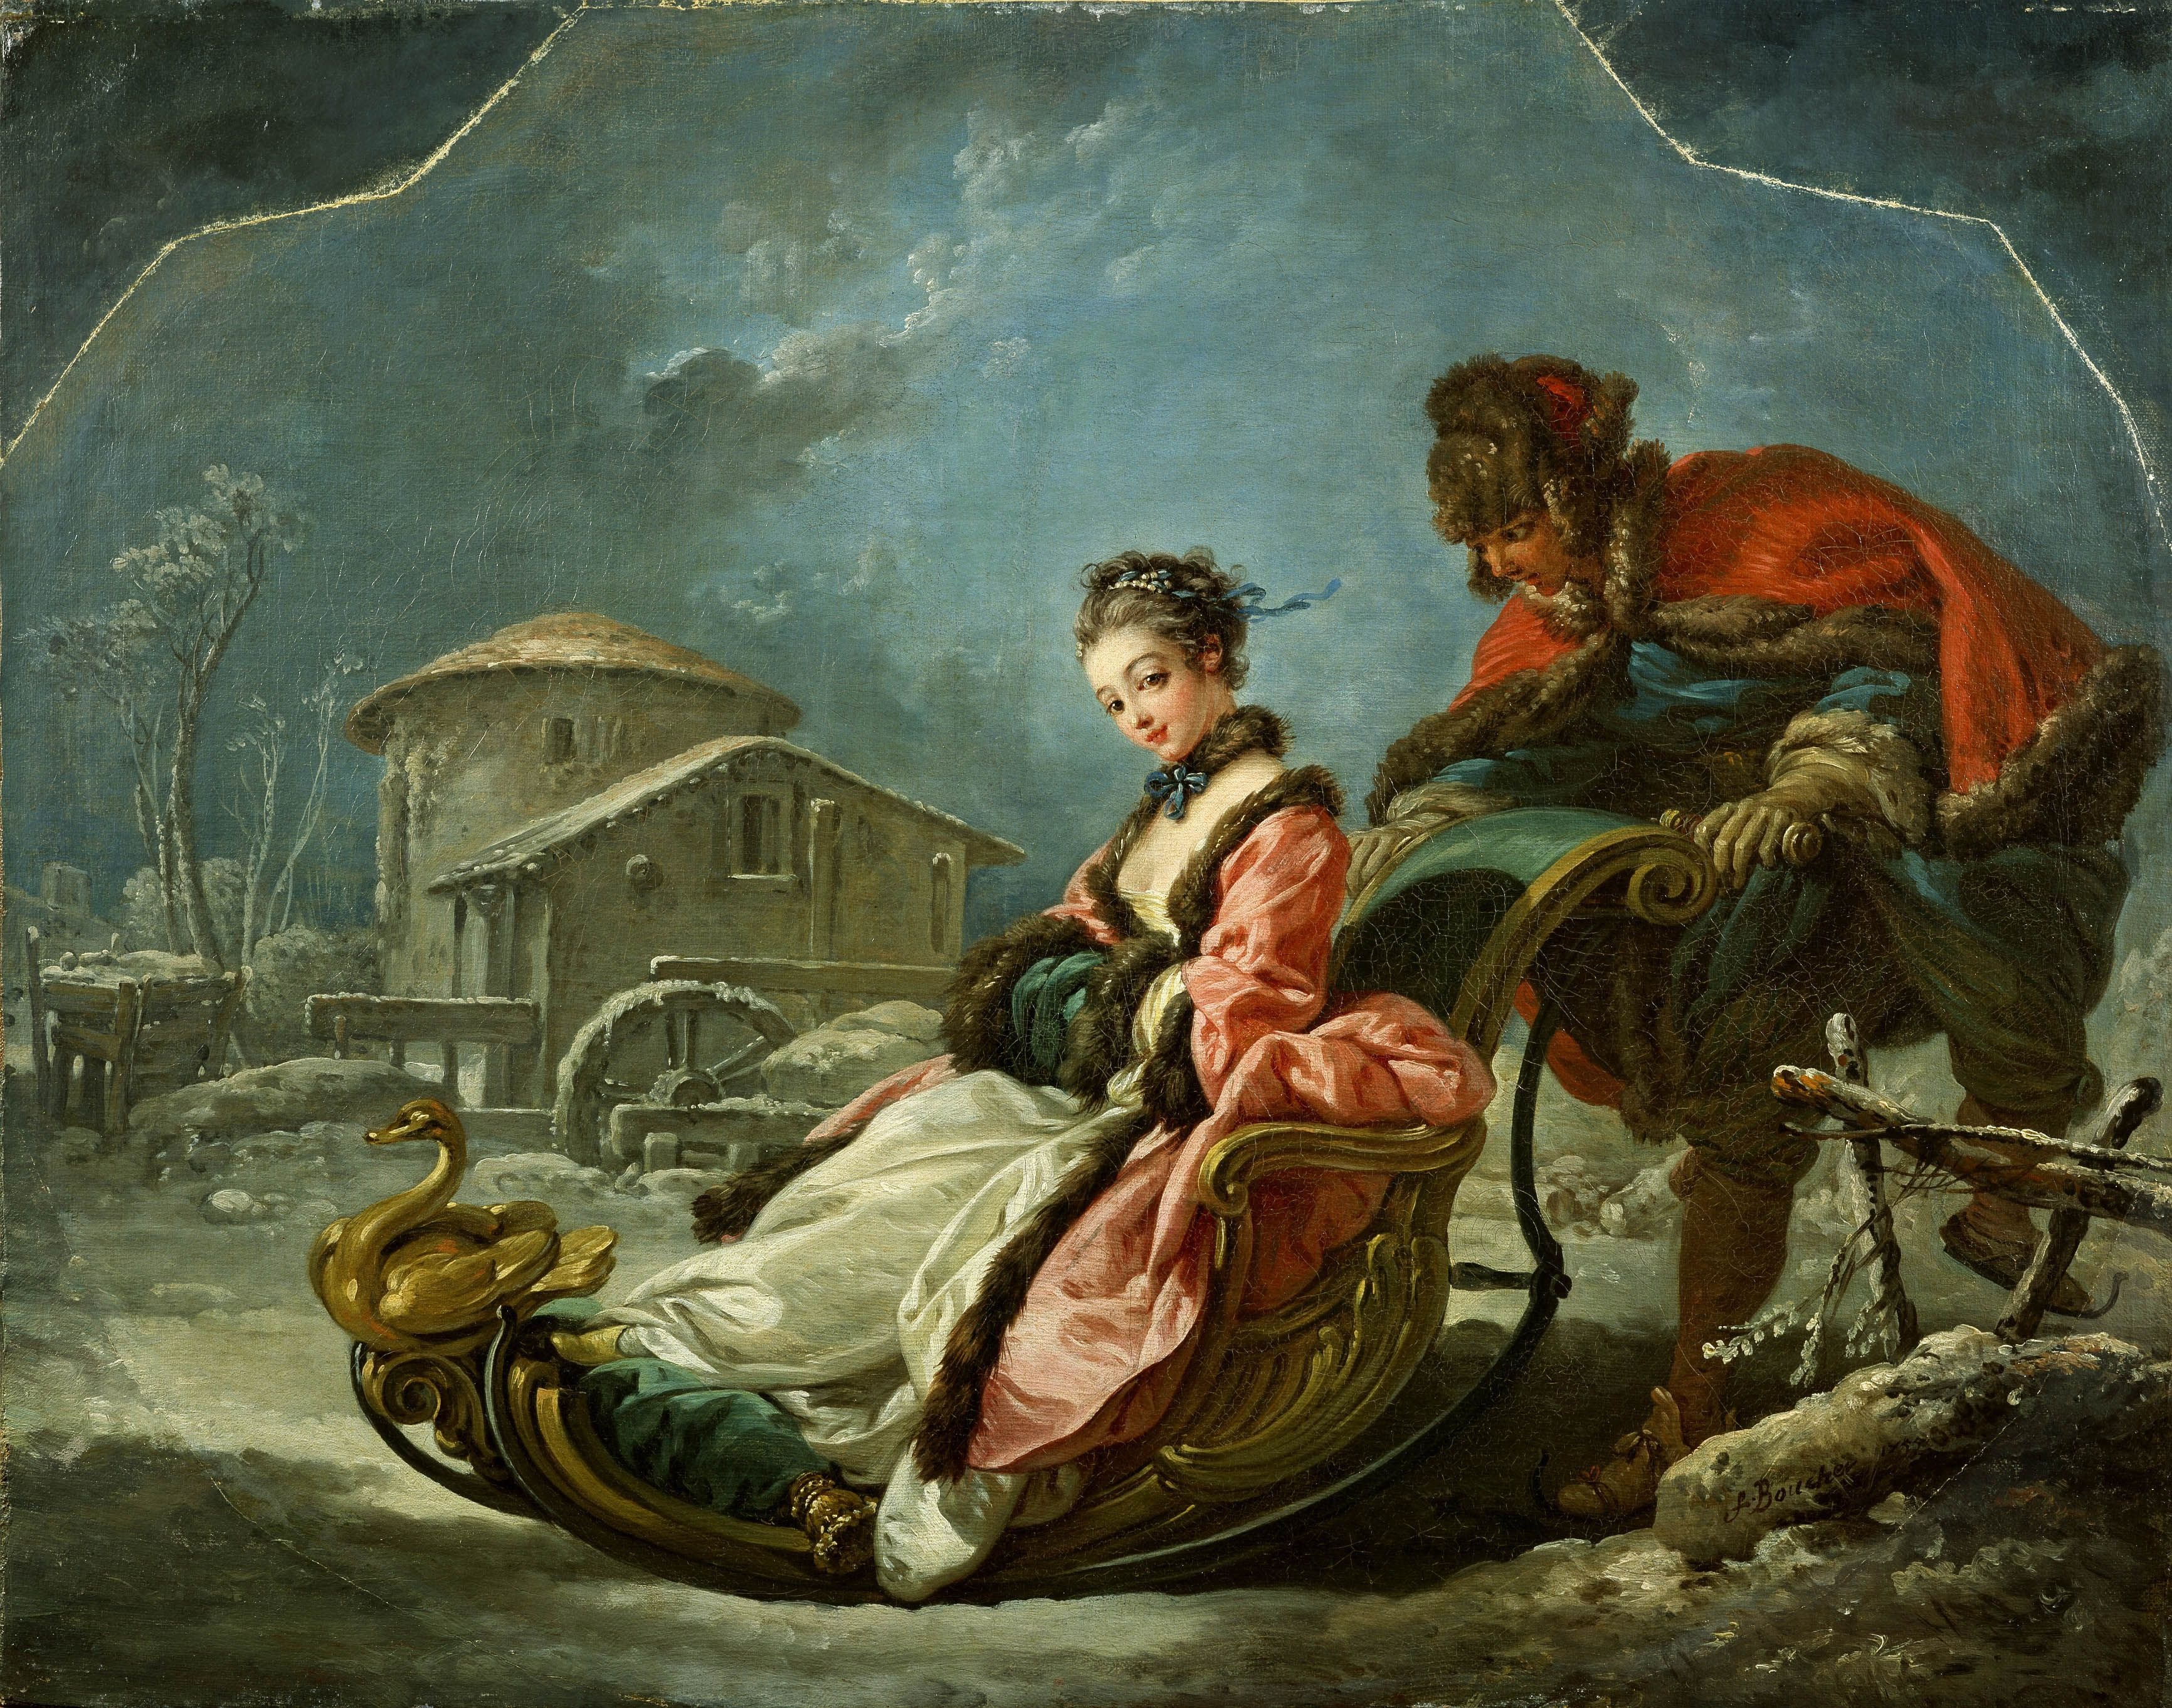 Winter part of The Four Seasons by Francois Boucher